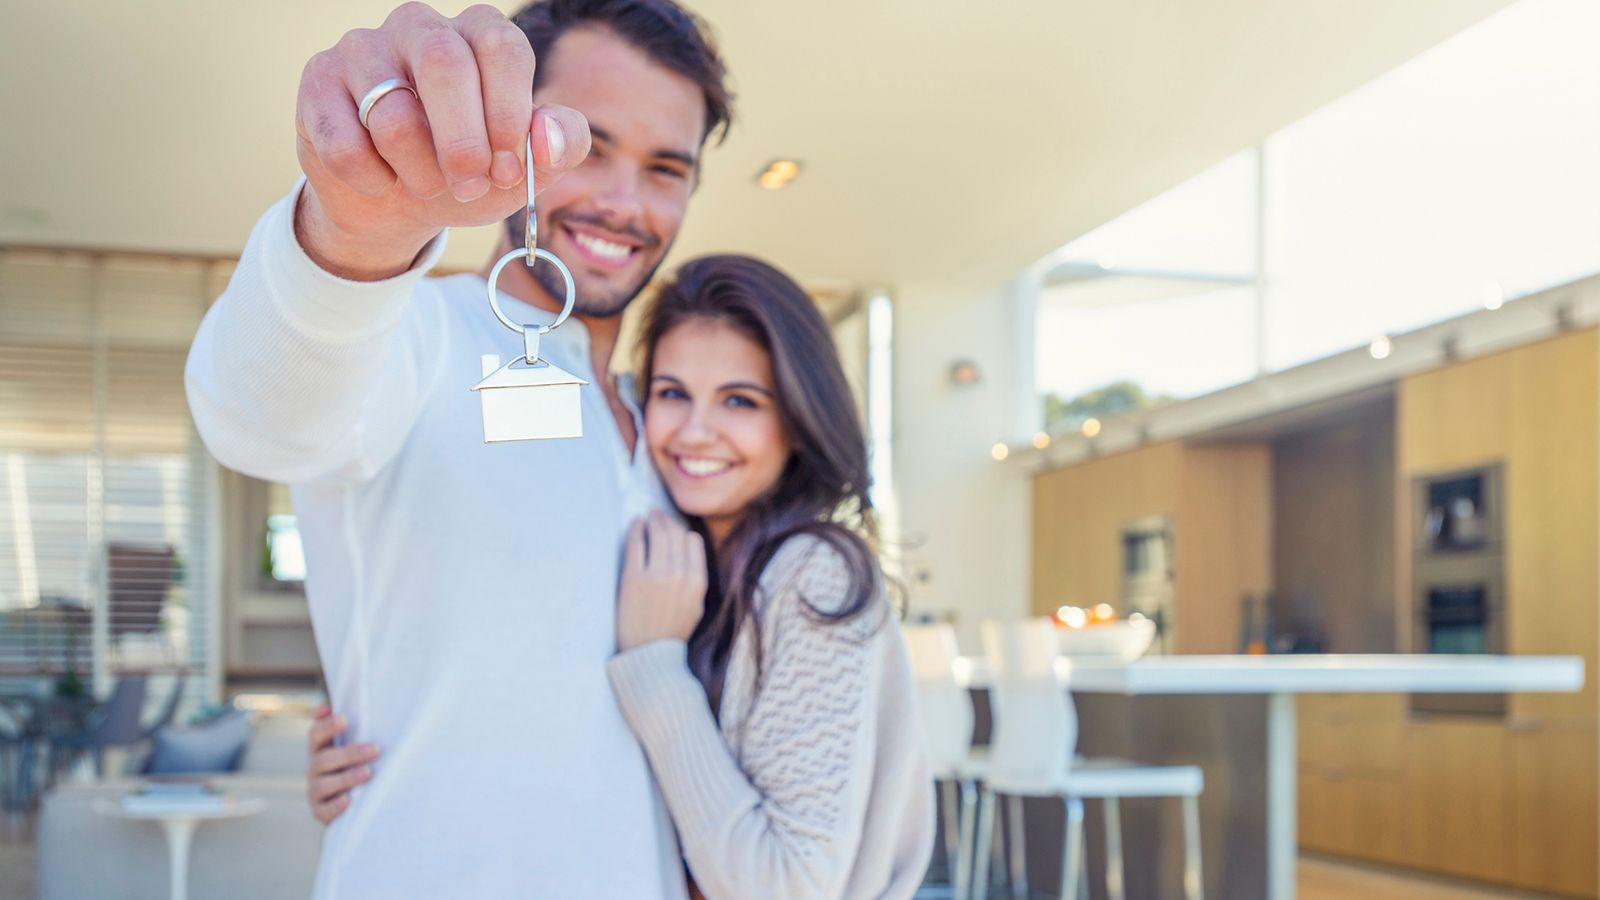 4 Misconceptions About Mortgages Homebuyers Should Ignore